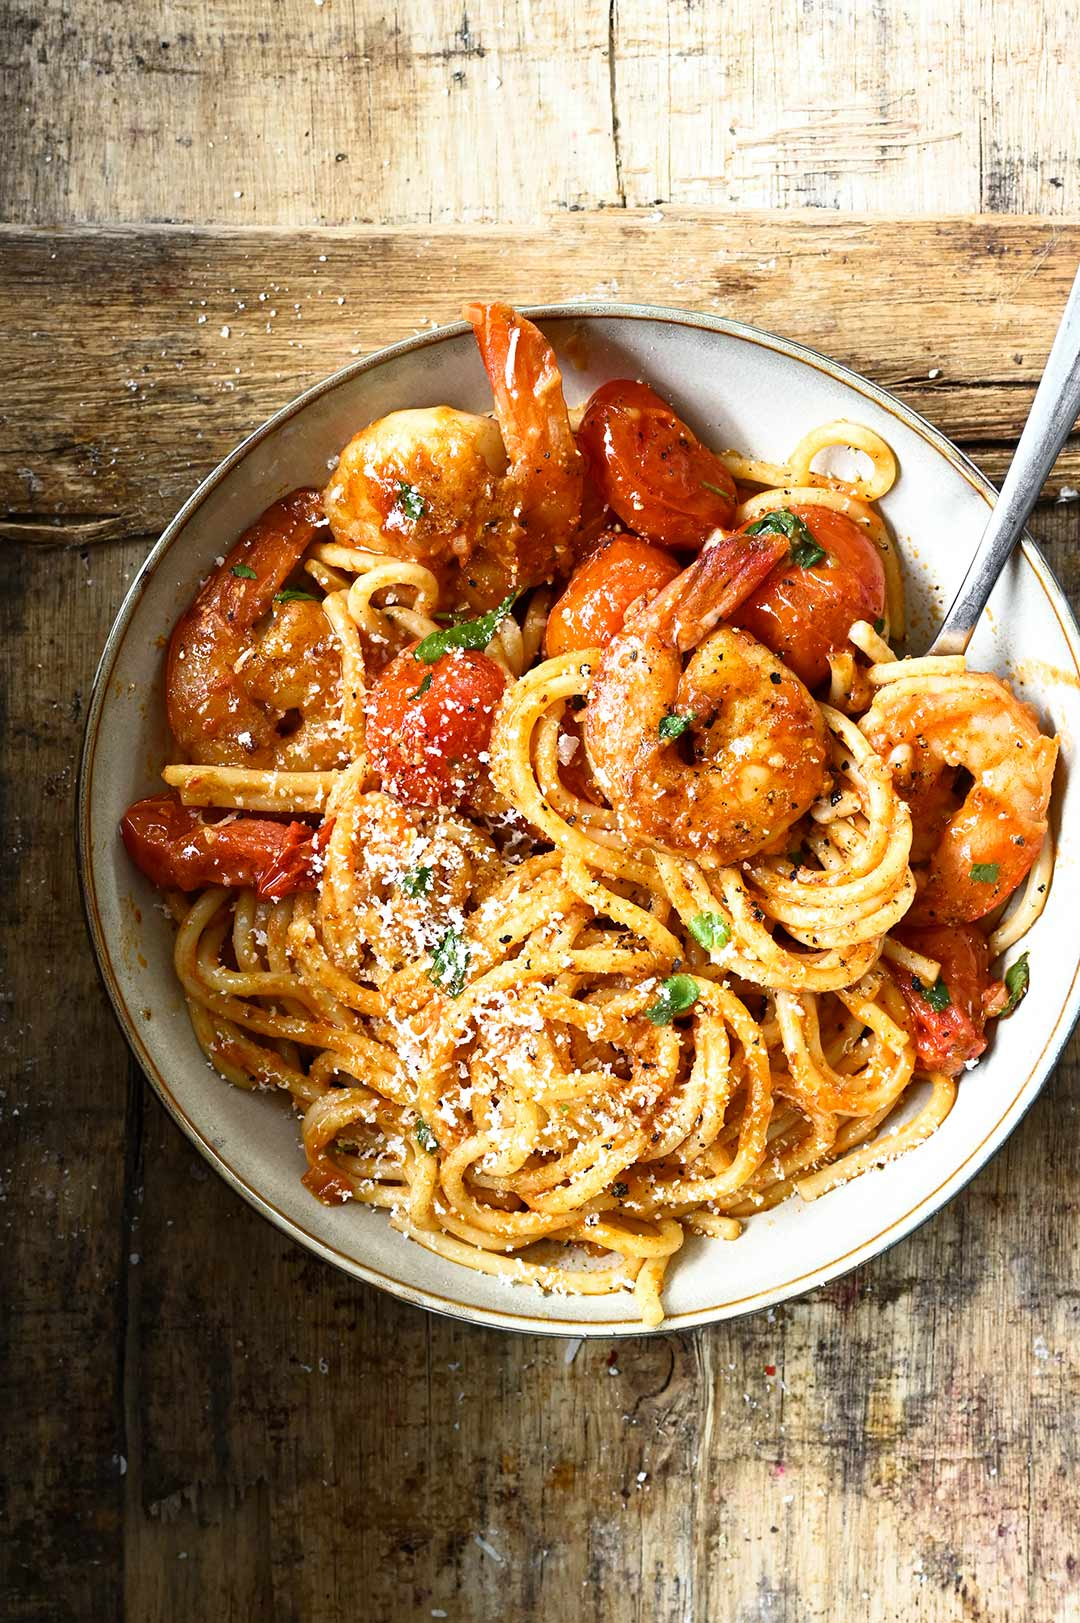 Weekly meal plan ideas: Pasta night gets spicy, with this Spicy tomato and shrimp pasta at Serving Dumplings